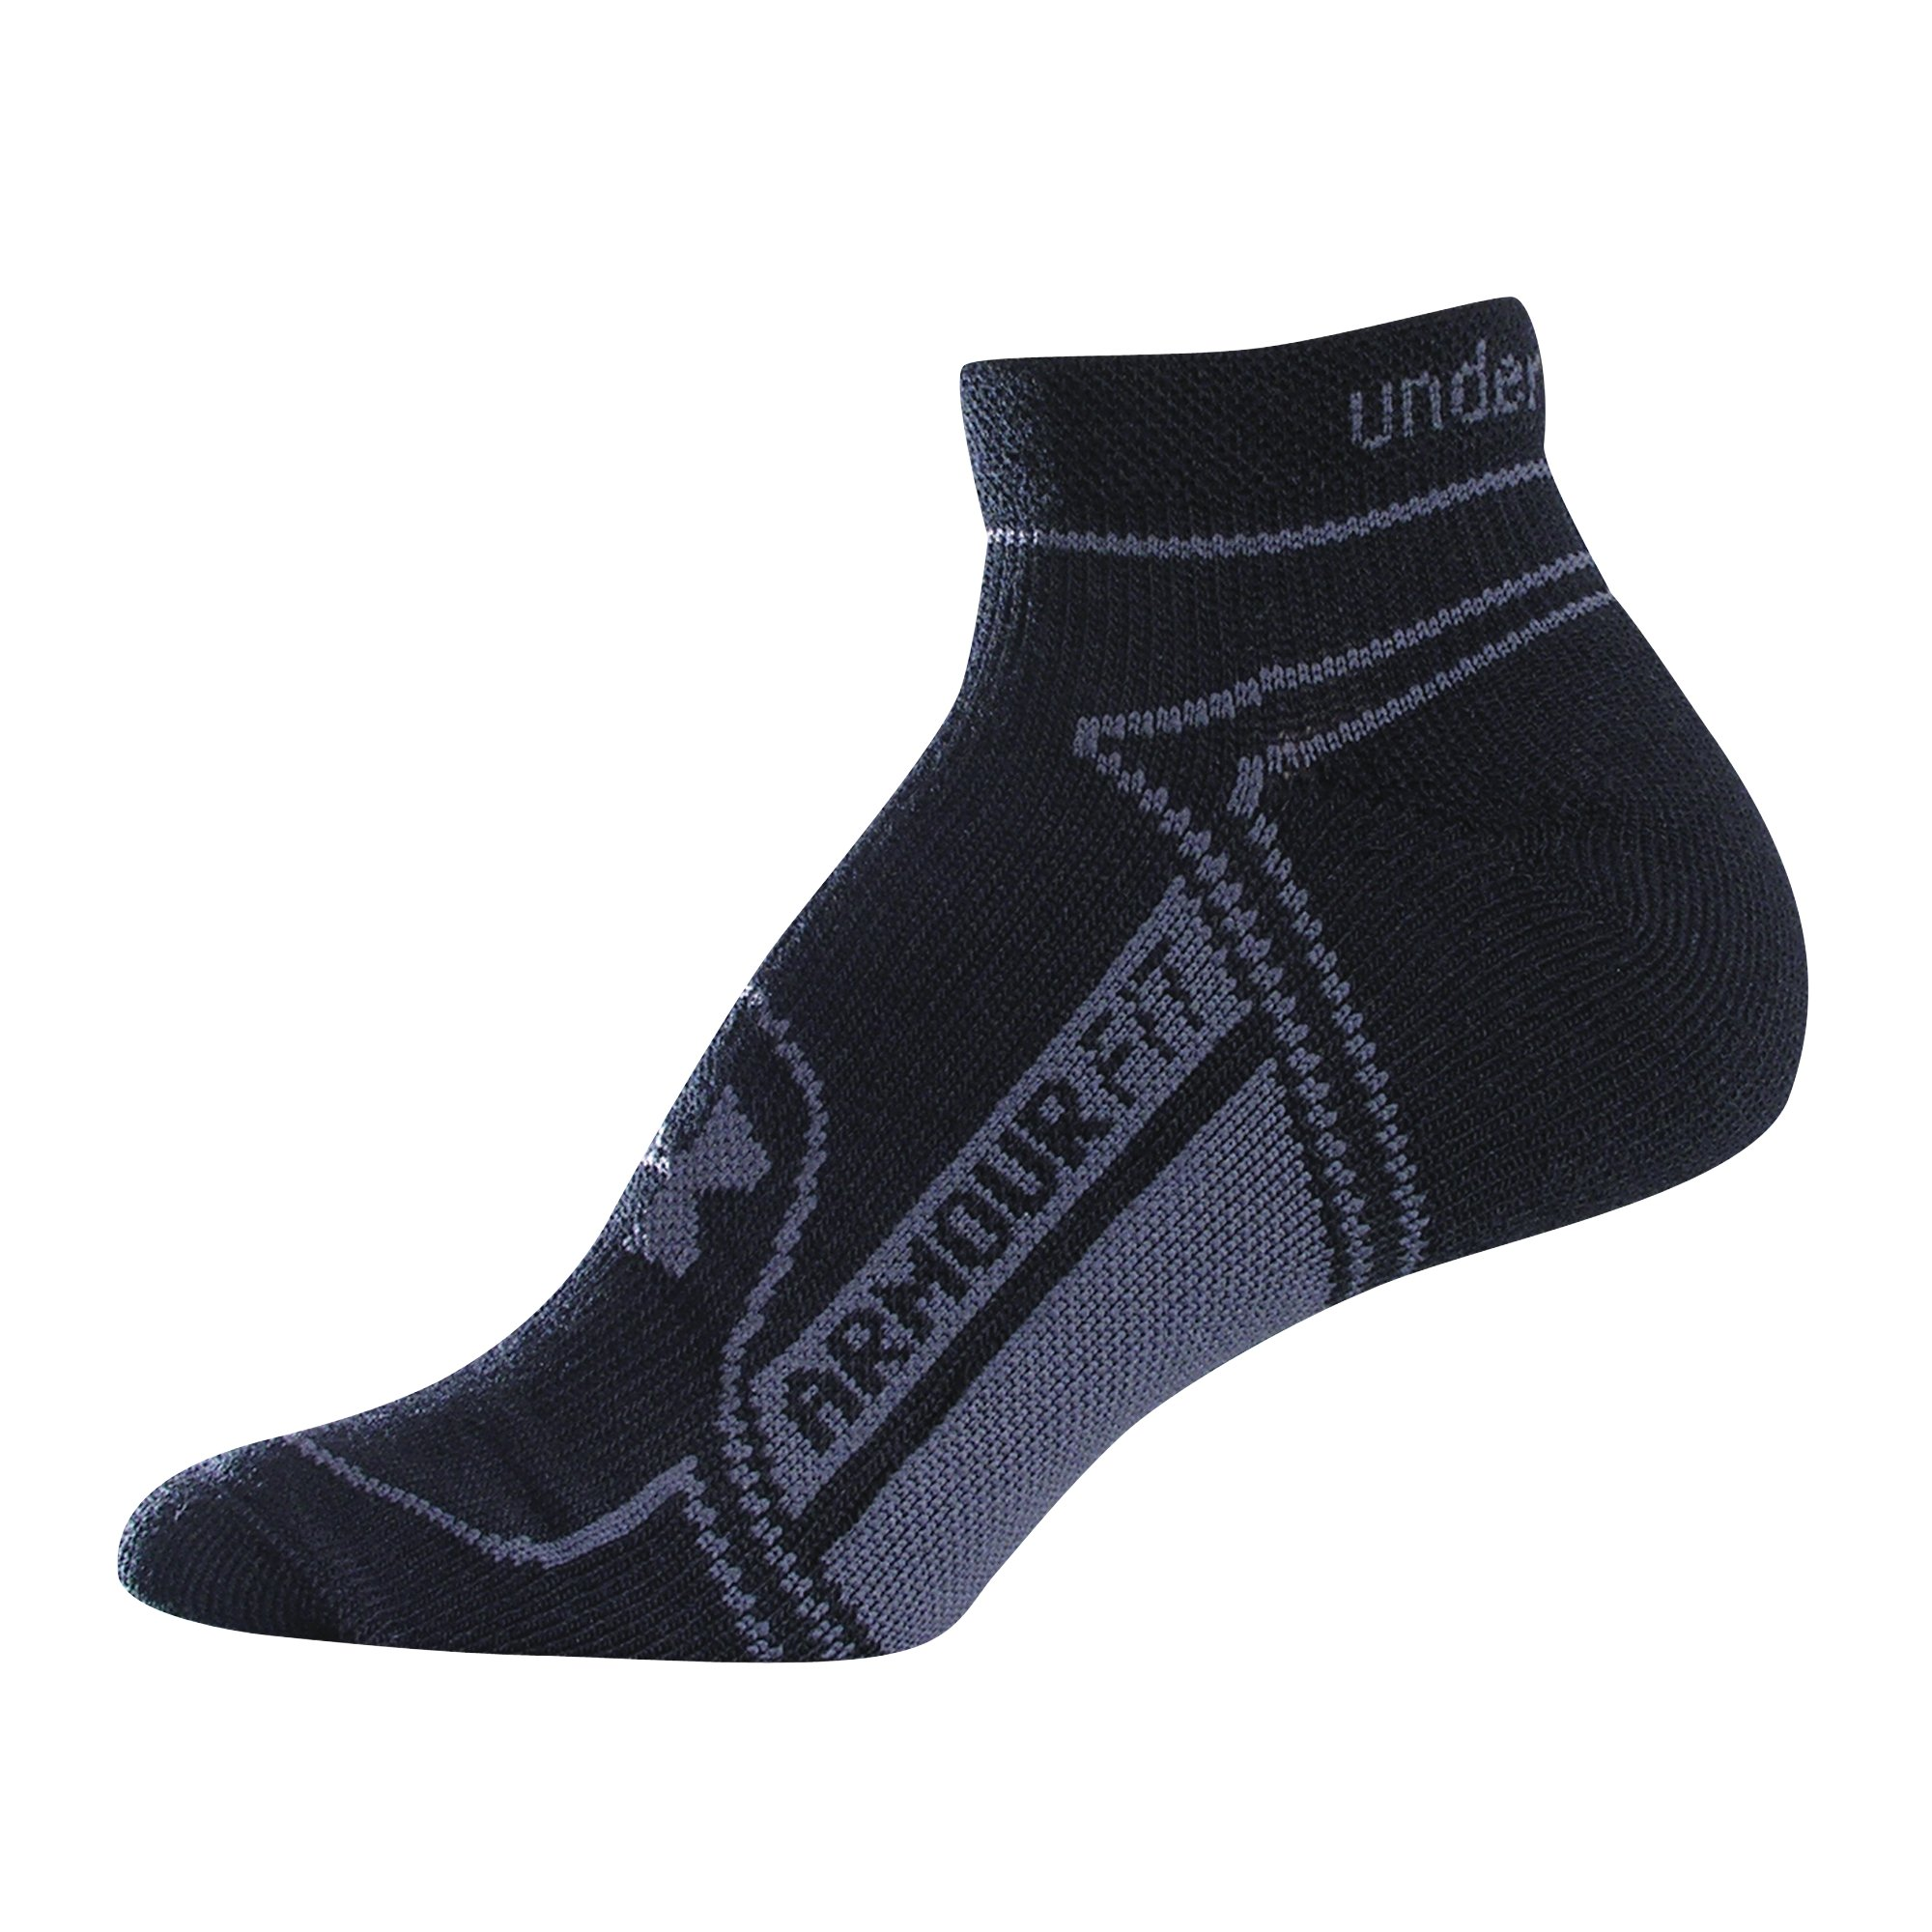 Women's Rush No Show Socks 2-Pack, Black , zoomed image